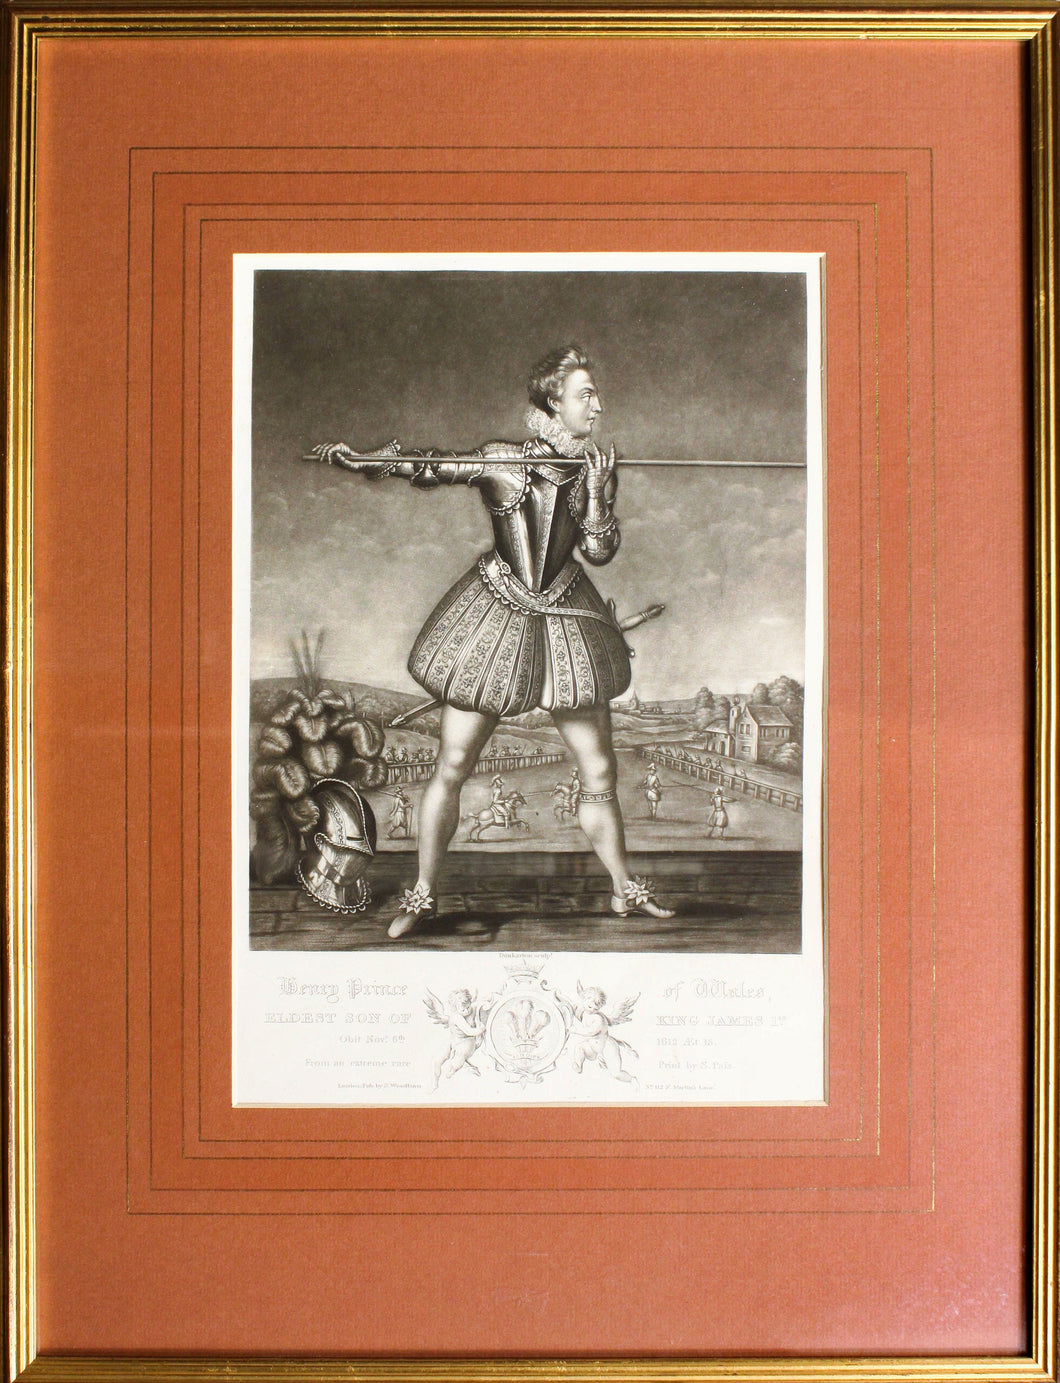 Henry Prince of Wales Exercising with a Lance - Mezzotint circa 1800